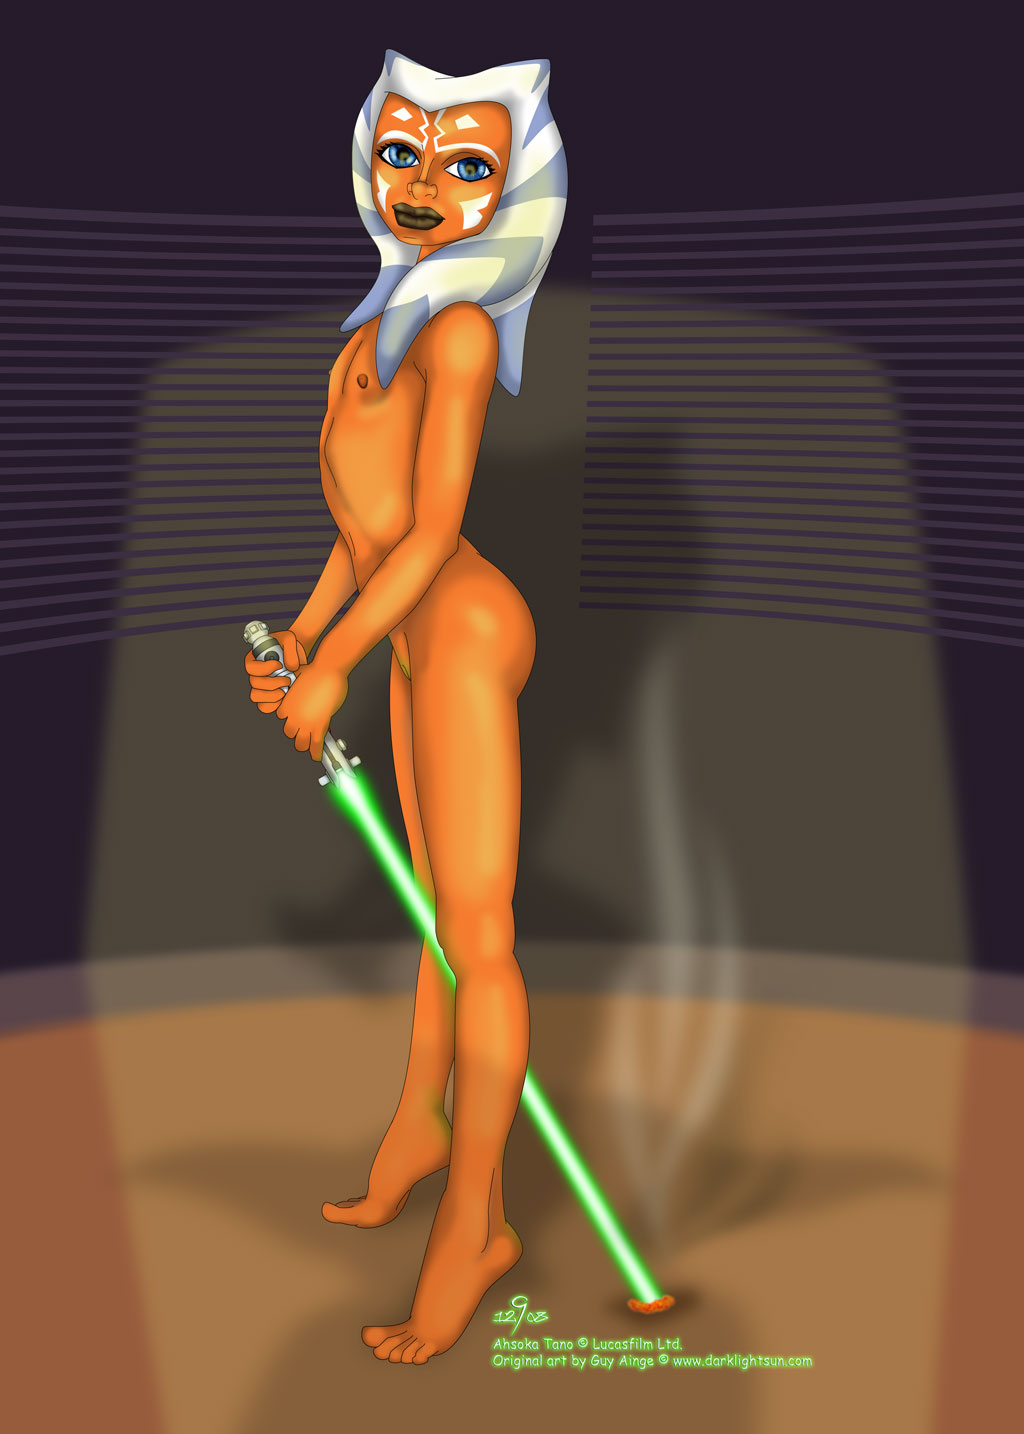 Star wars naked chicks